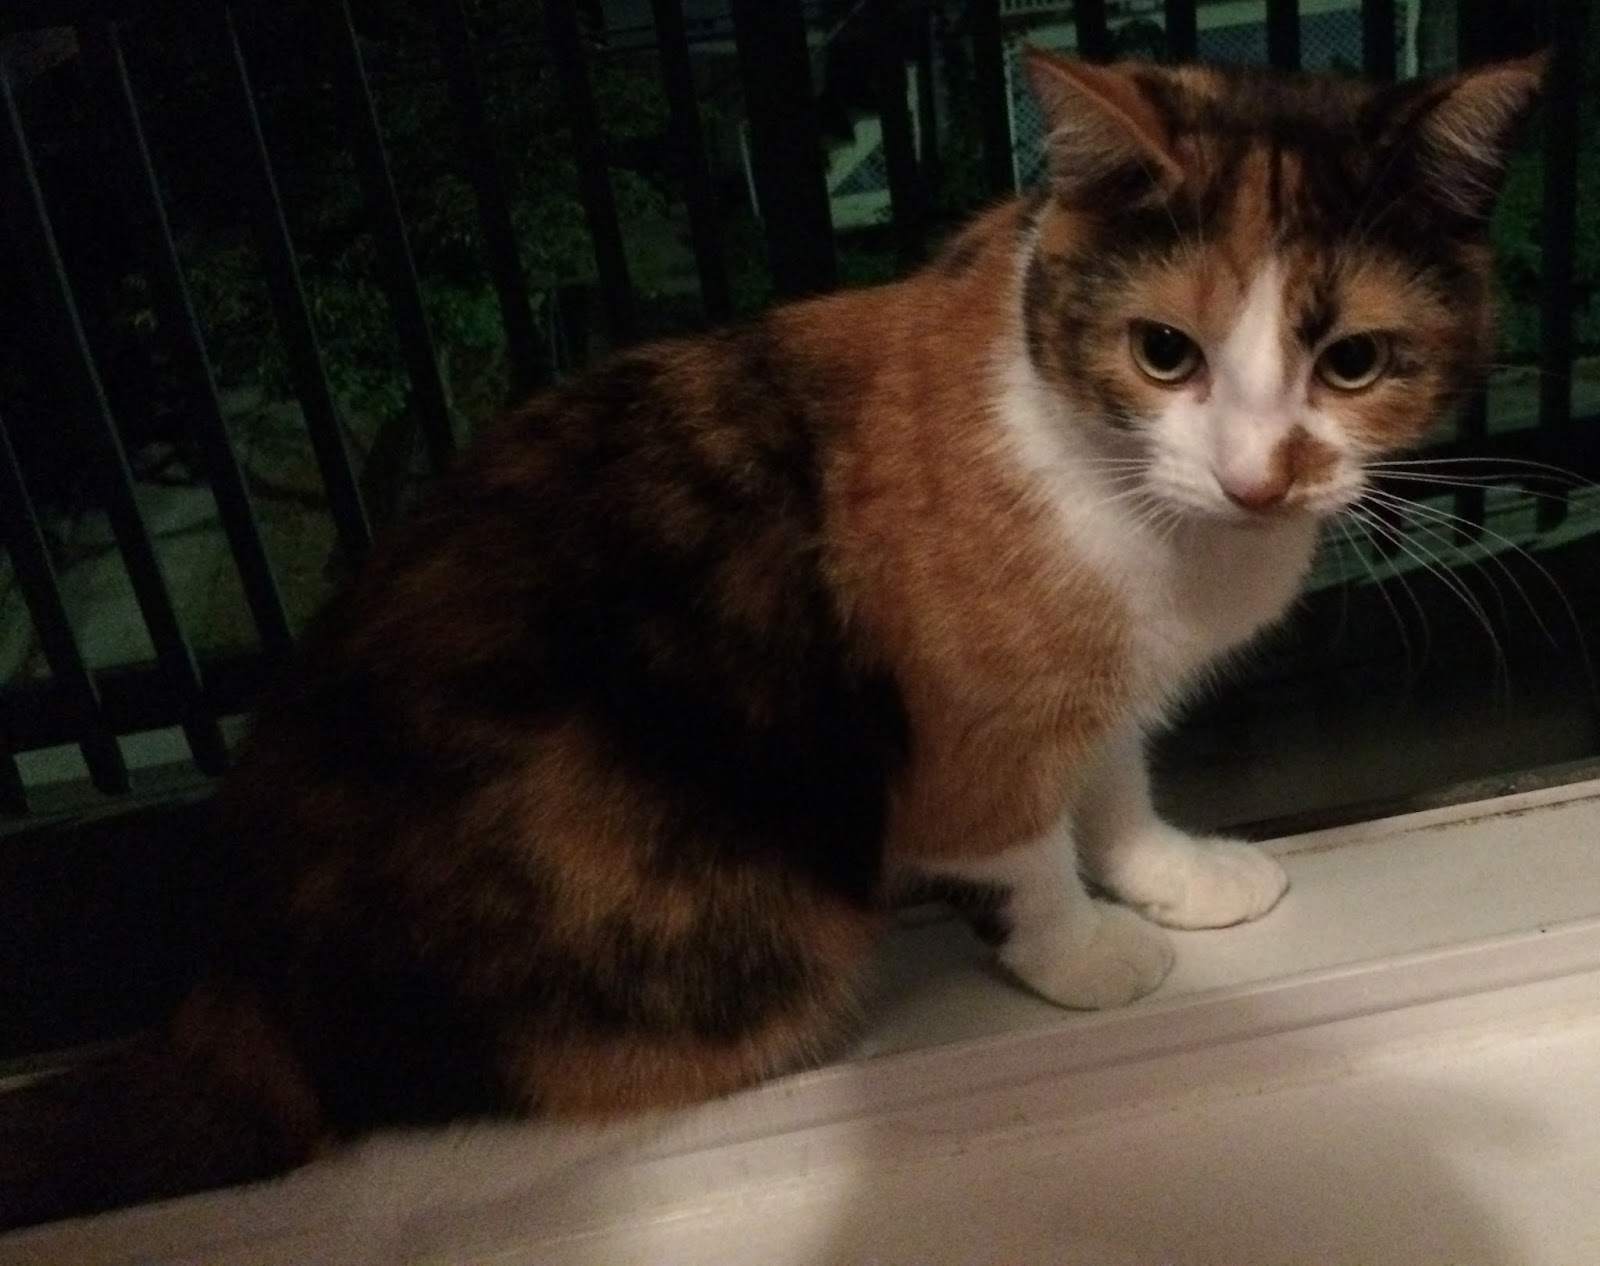 Science Types: The genetics of the calico cat